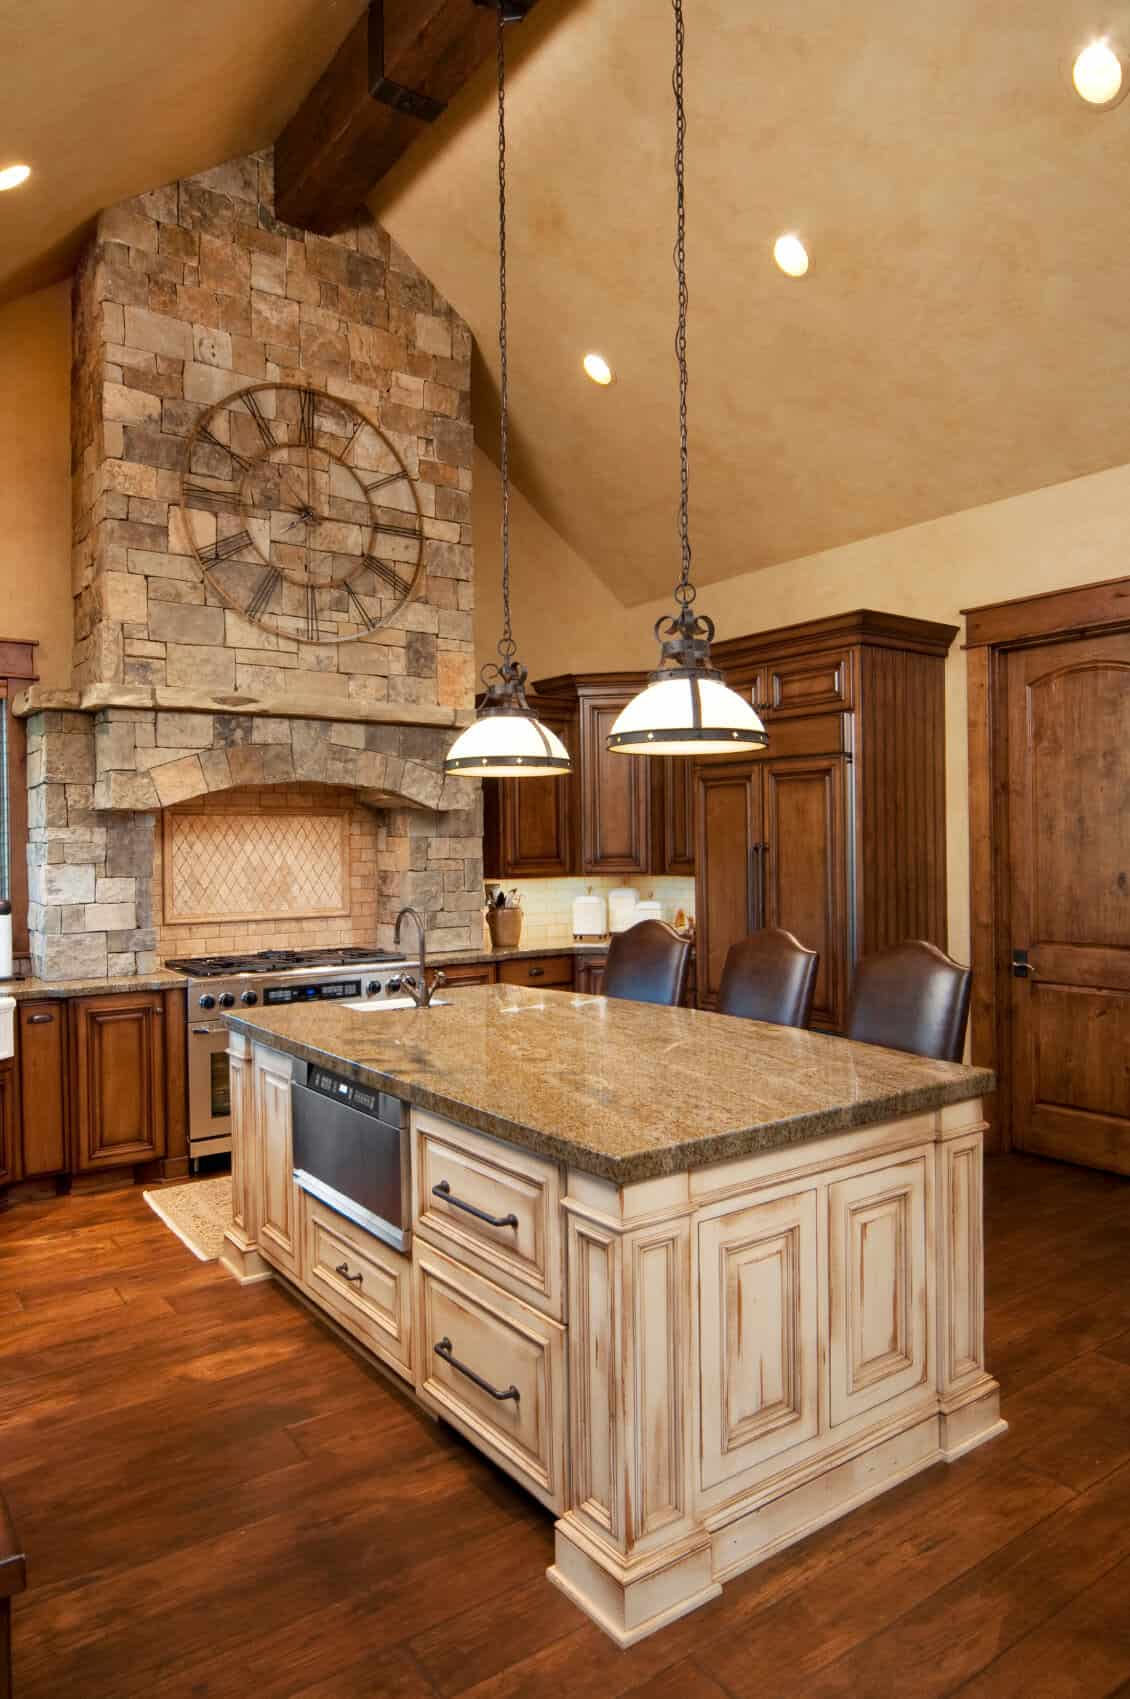 oak kitchen islands kwc faucet 90 different island ideas and designs photos rich natural wood holds this large contrasting light at center